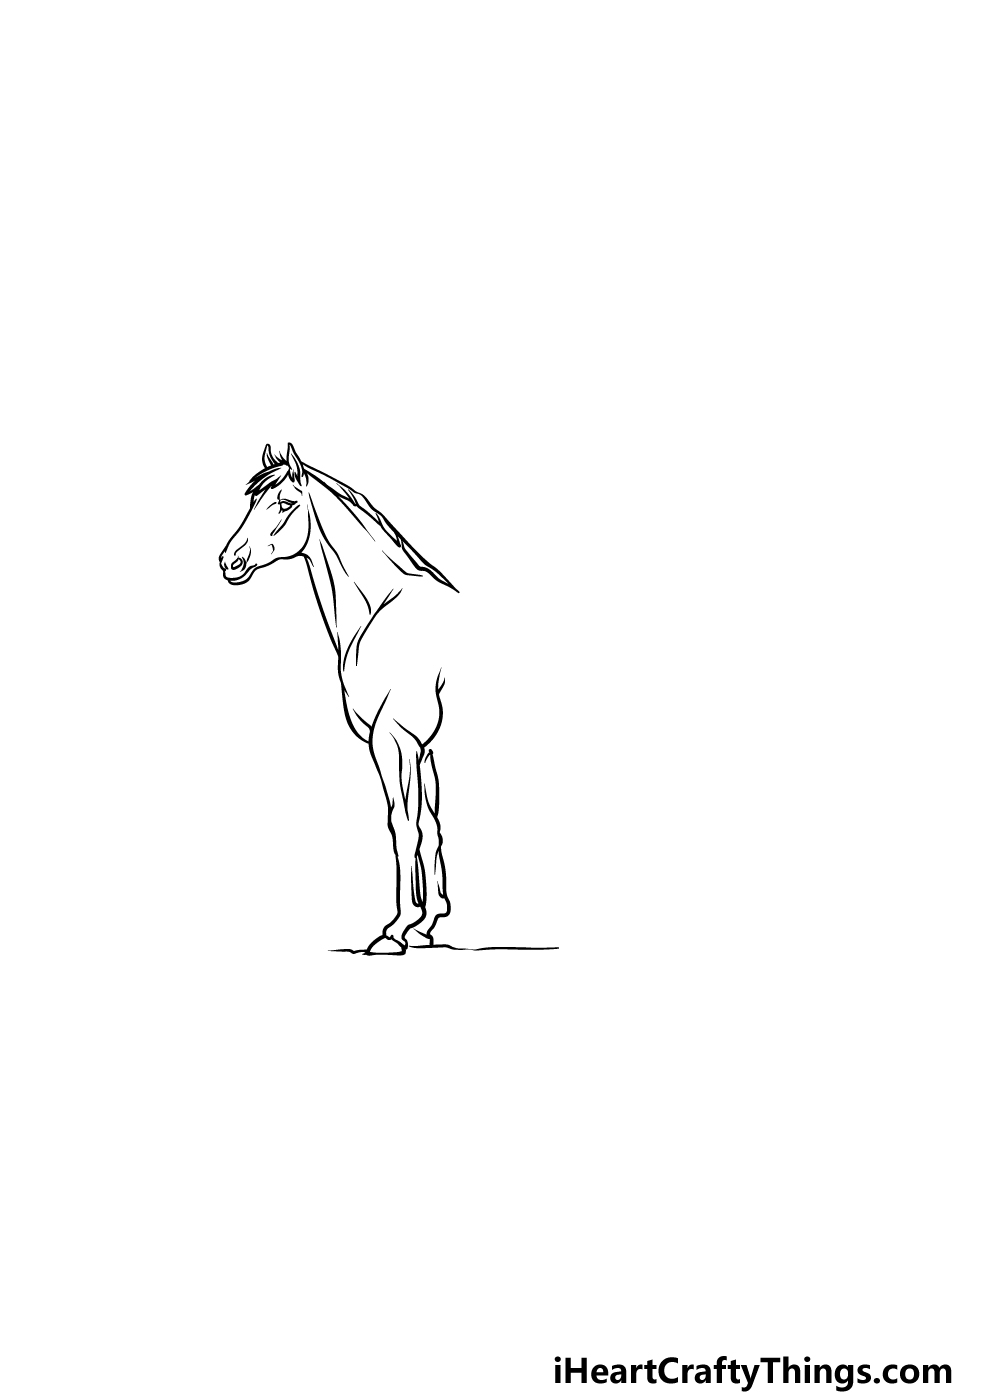 drawing a horse step 2